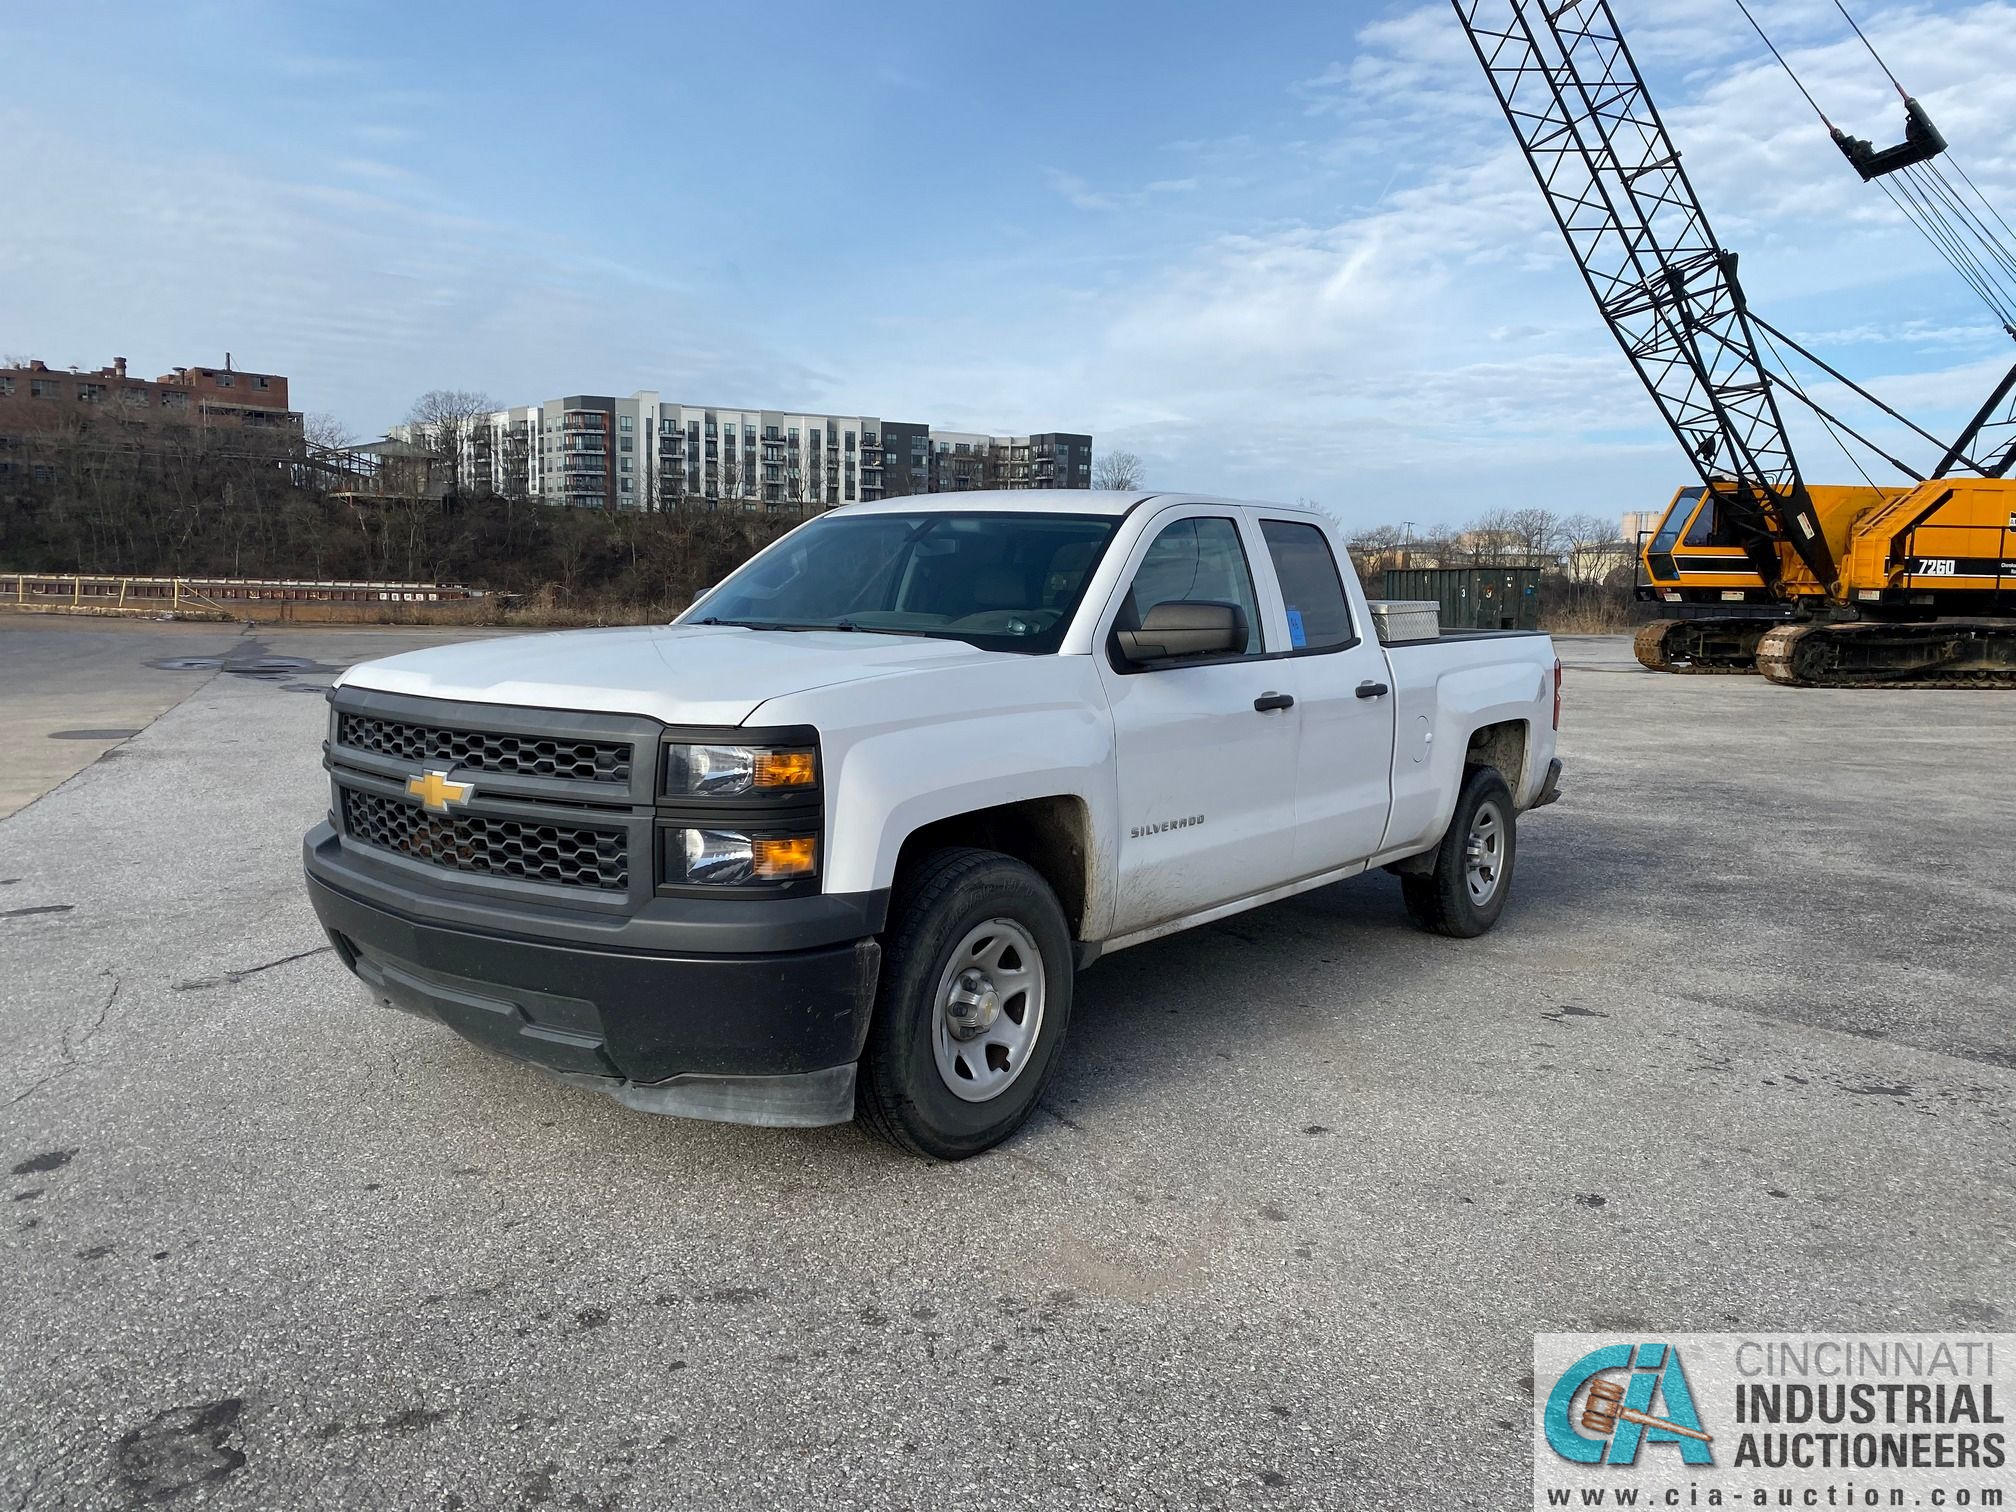 2014 CHEVROLET SILVERADO 1500 PICK UP TRUCK; VIN# 1GCRCPEH1EZ239274, 67,252 MILES SHOWING, 4.3 L, - Image 6 of 13